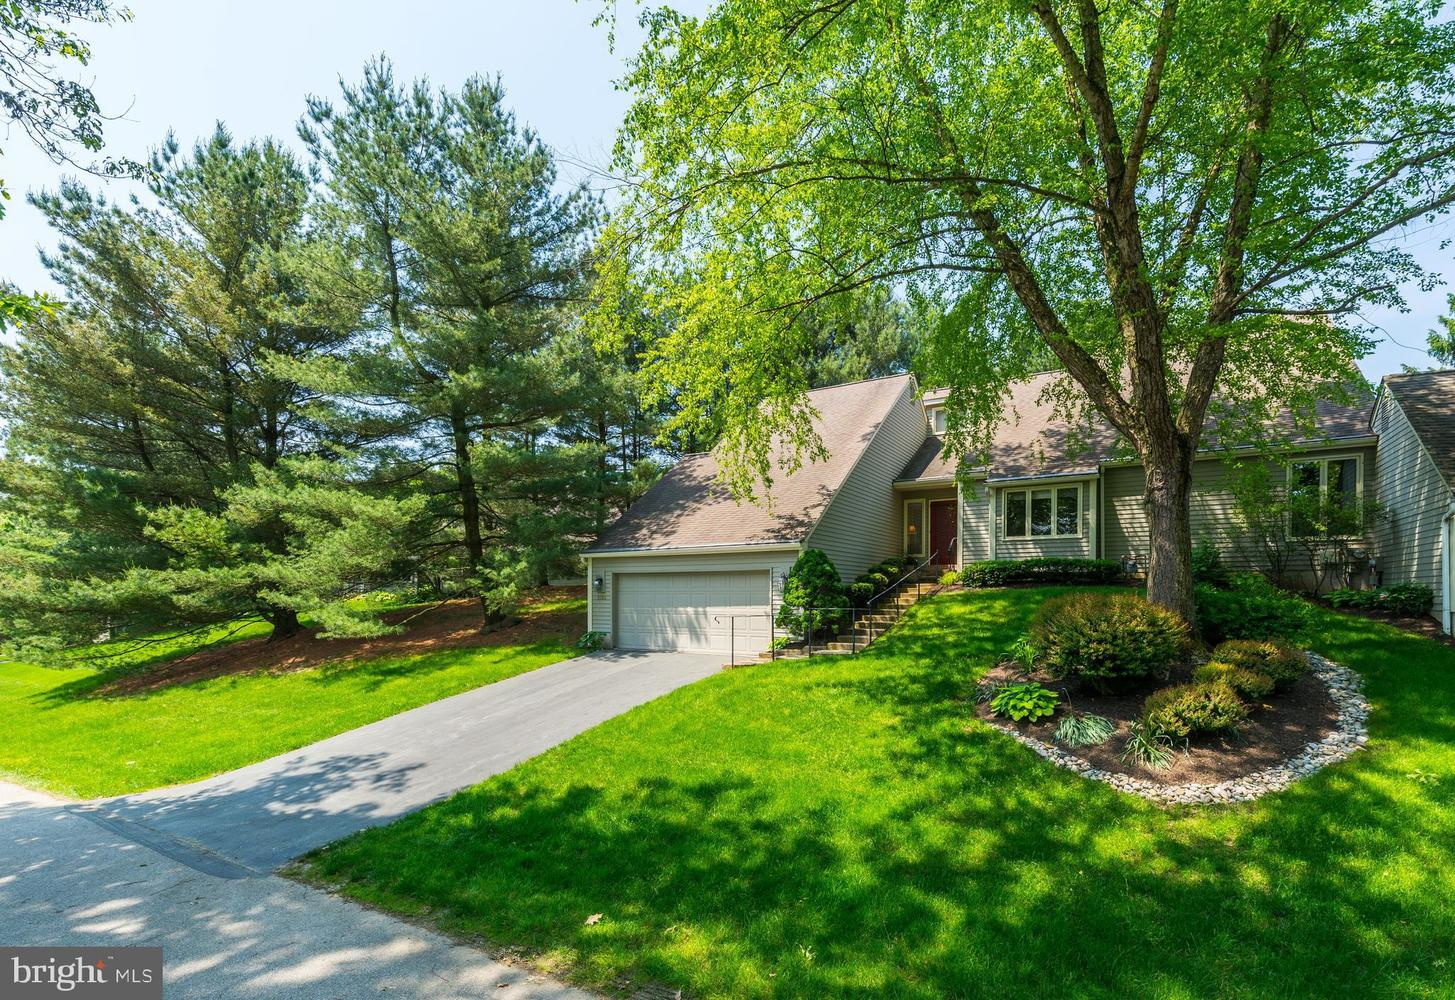 1132 Mews Lane West Chester Pa 19382 Compass